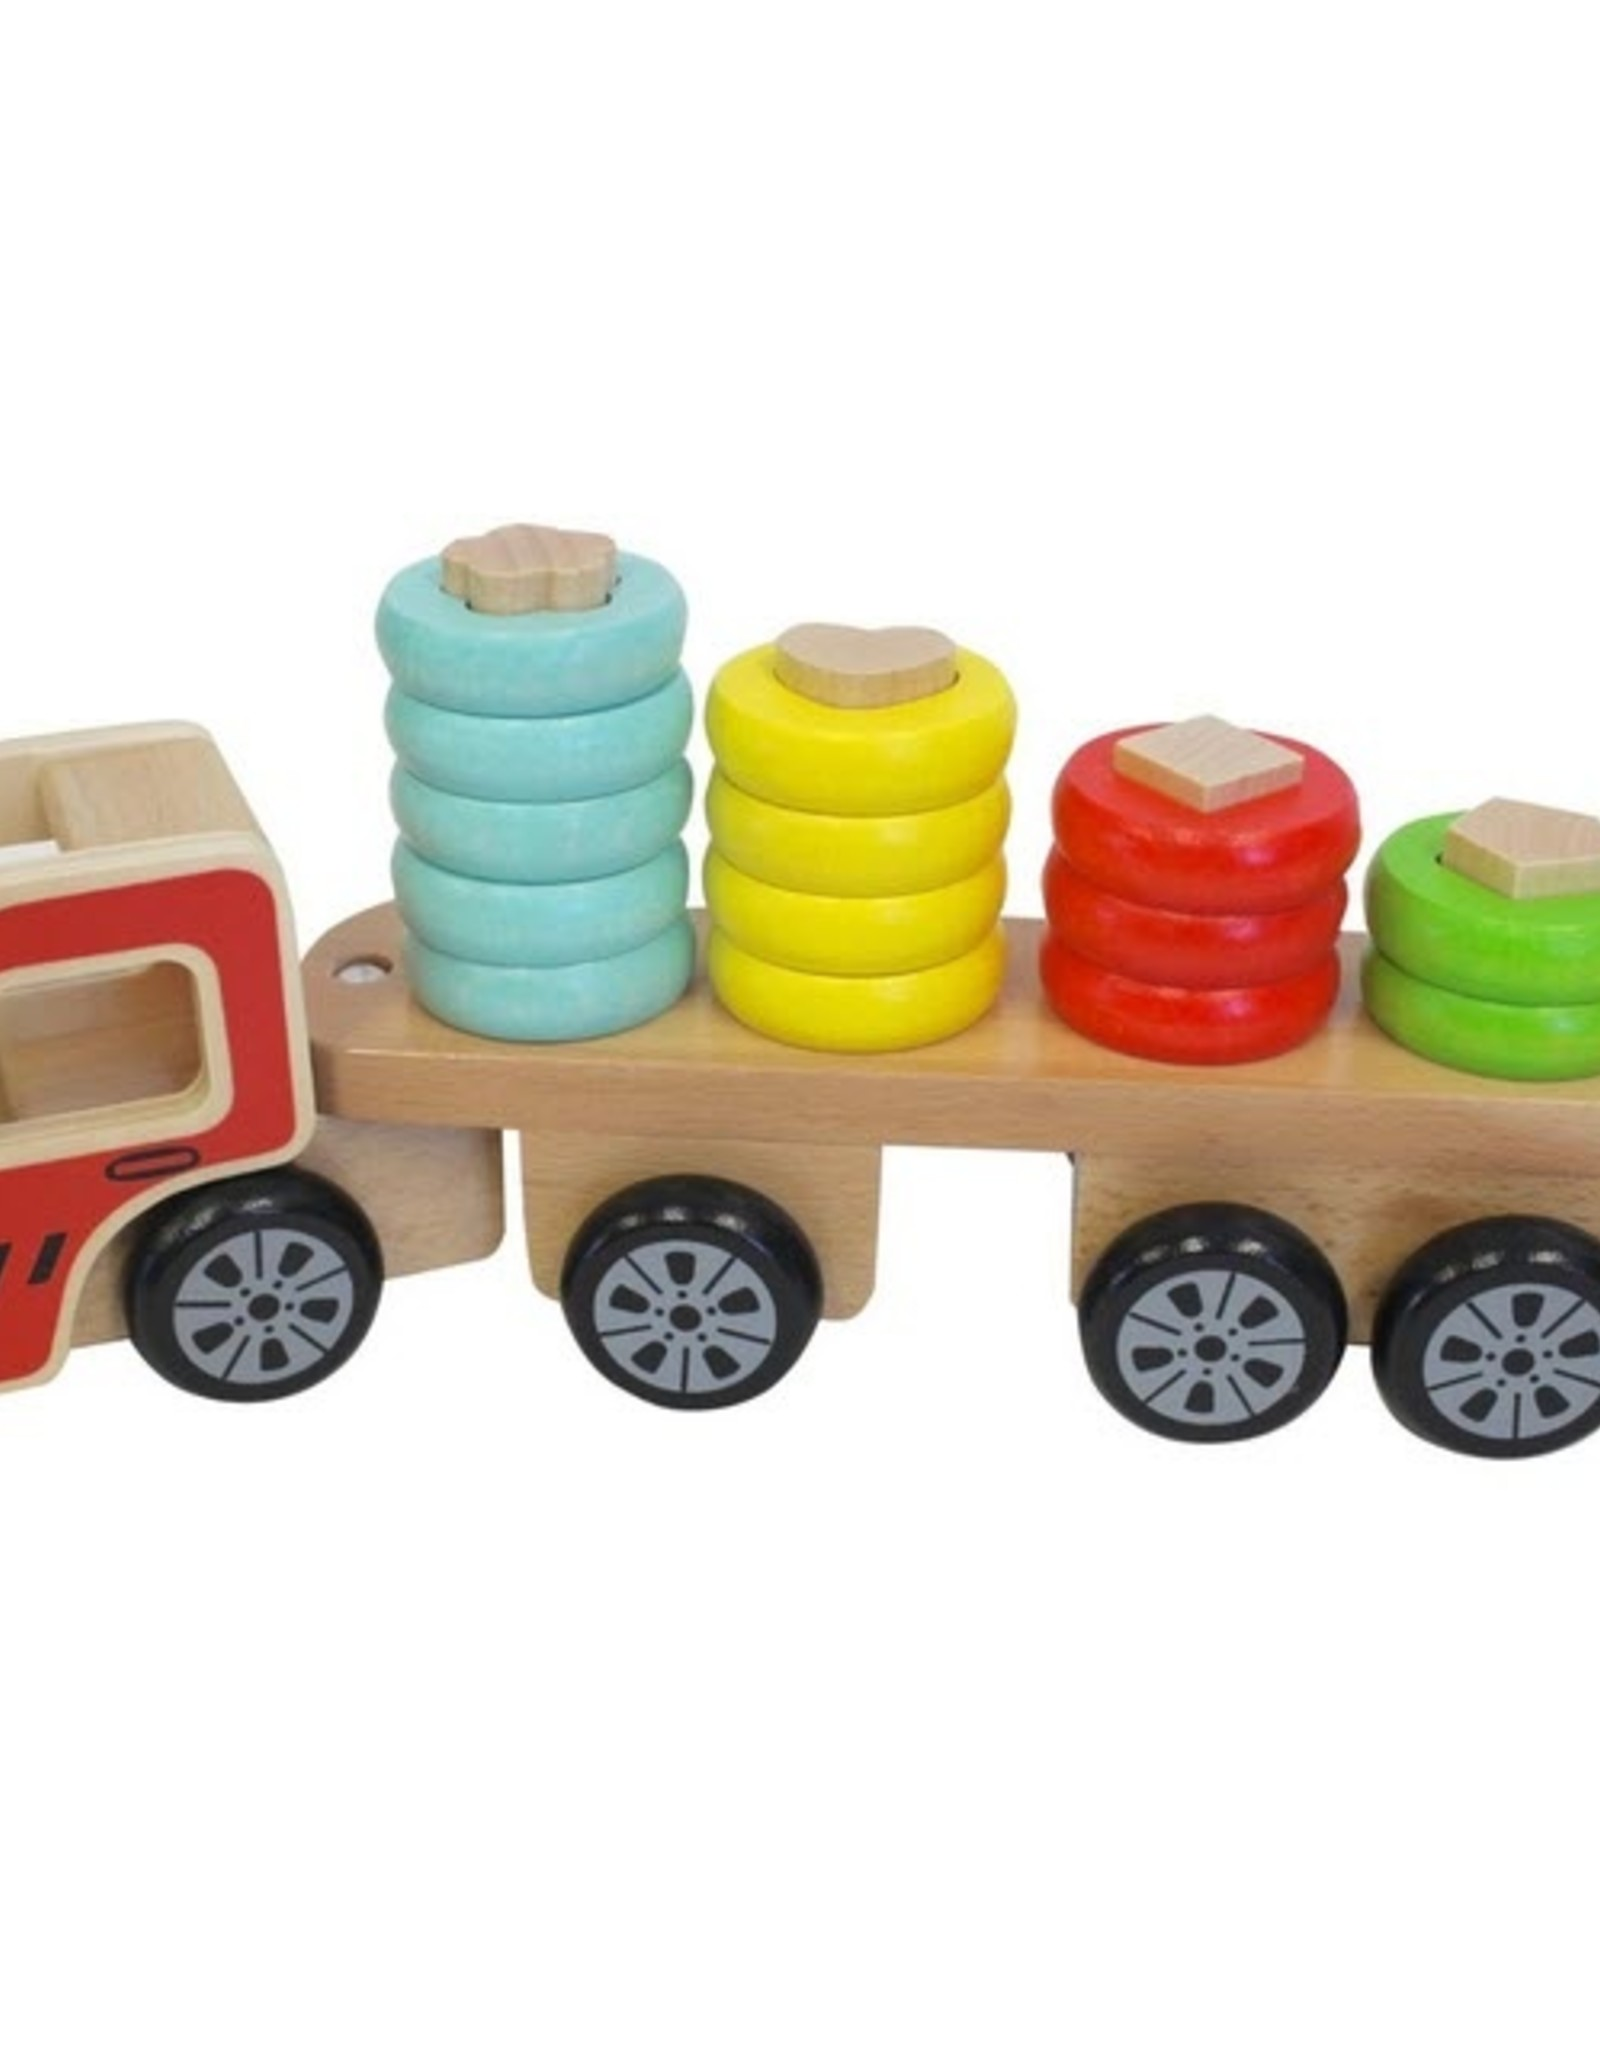 Discoveroo Discoveroo - Sort N Stack Truck